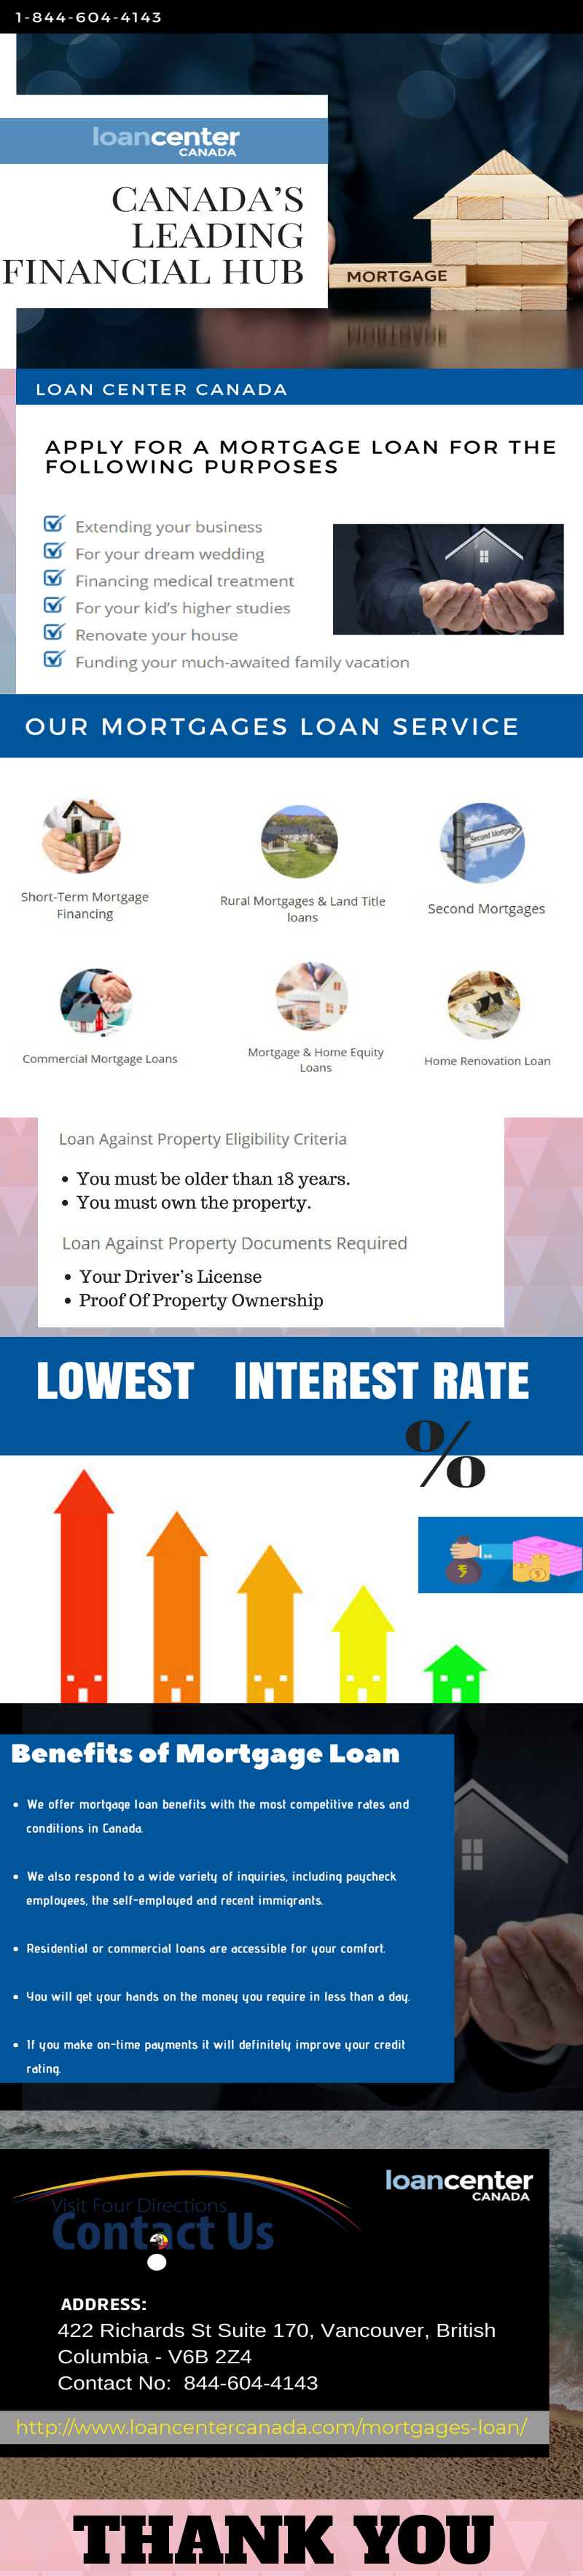 Get Mortgage Loans With Us We Are A Highly Reputable Company In Canada We Provide A Fast And Easy Mortgage L Mortgage Loans Business Loans Loan Consolidation